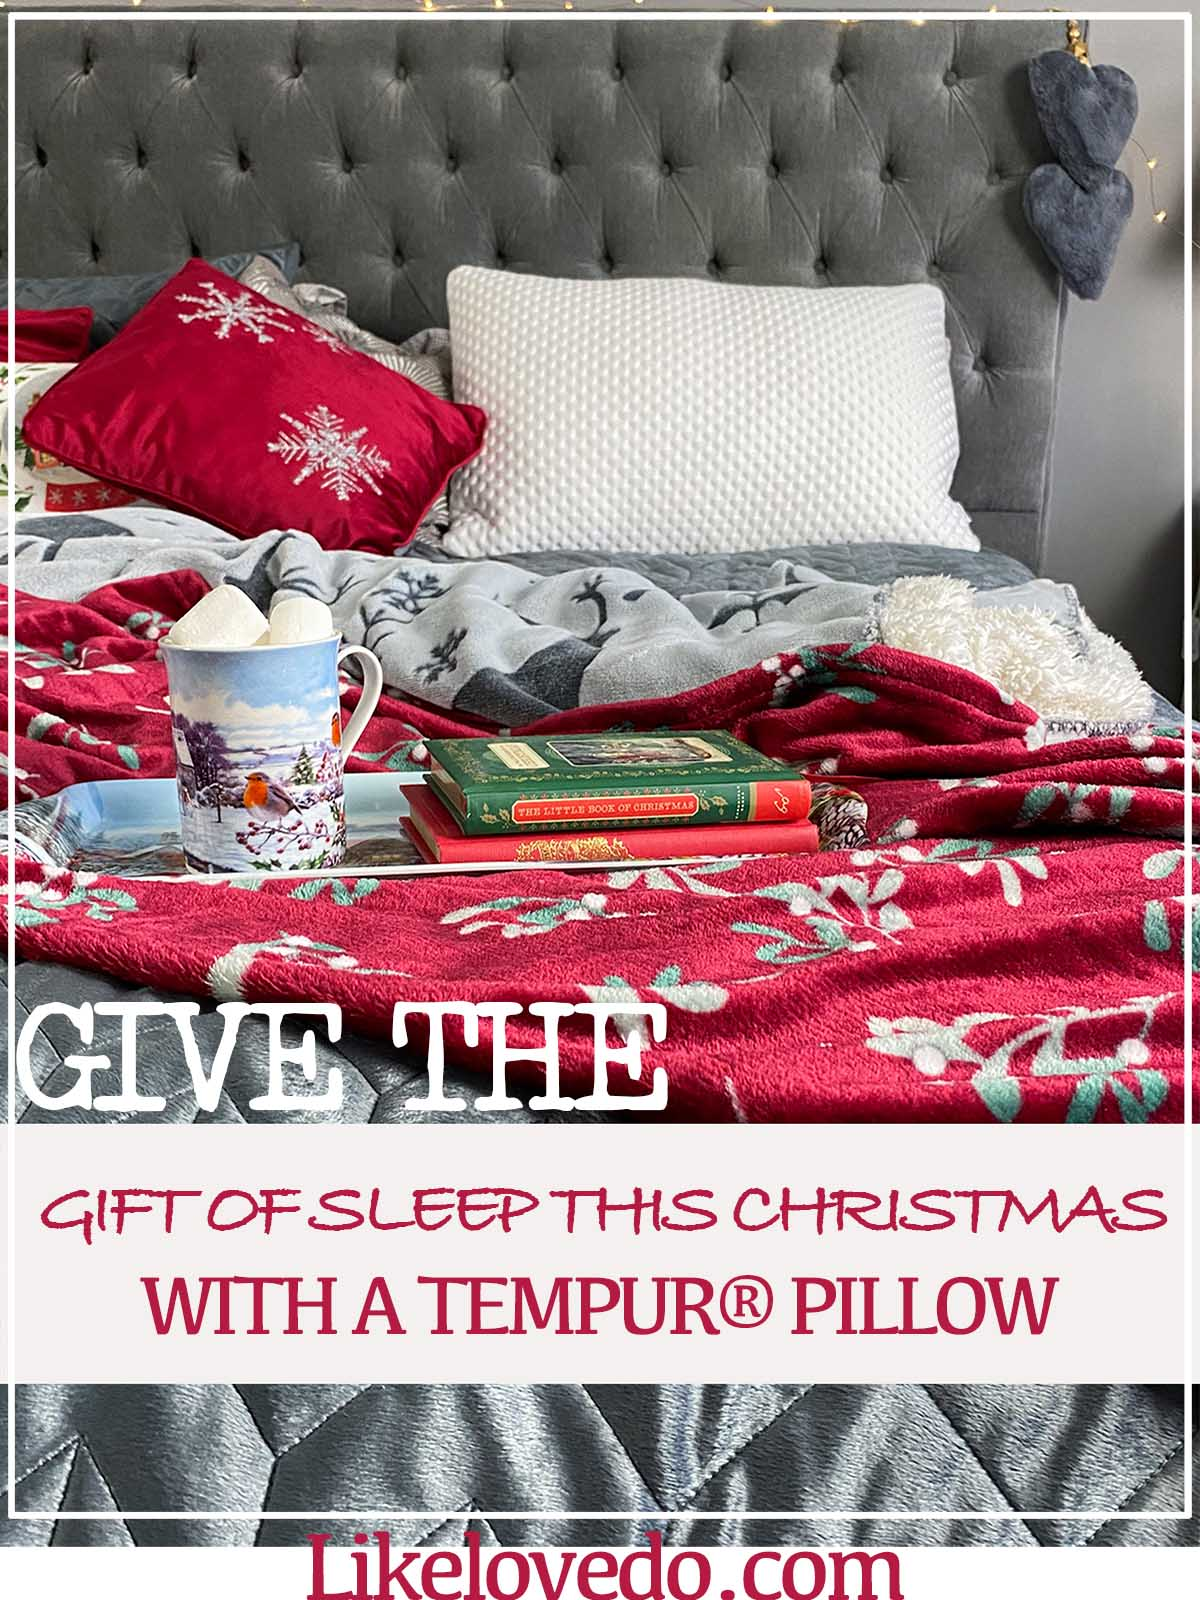 Give the Gift of sleep this christmas with a TEMPUR® pillow this christmas